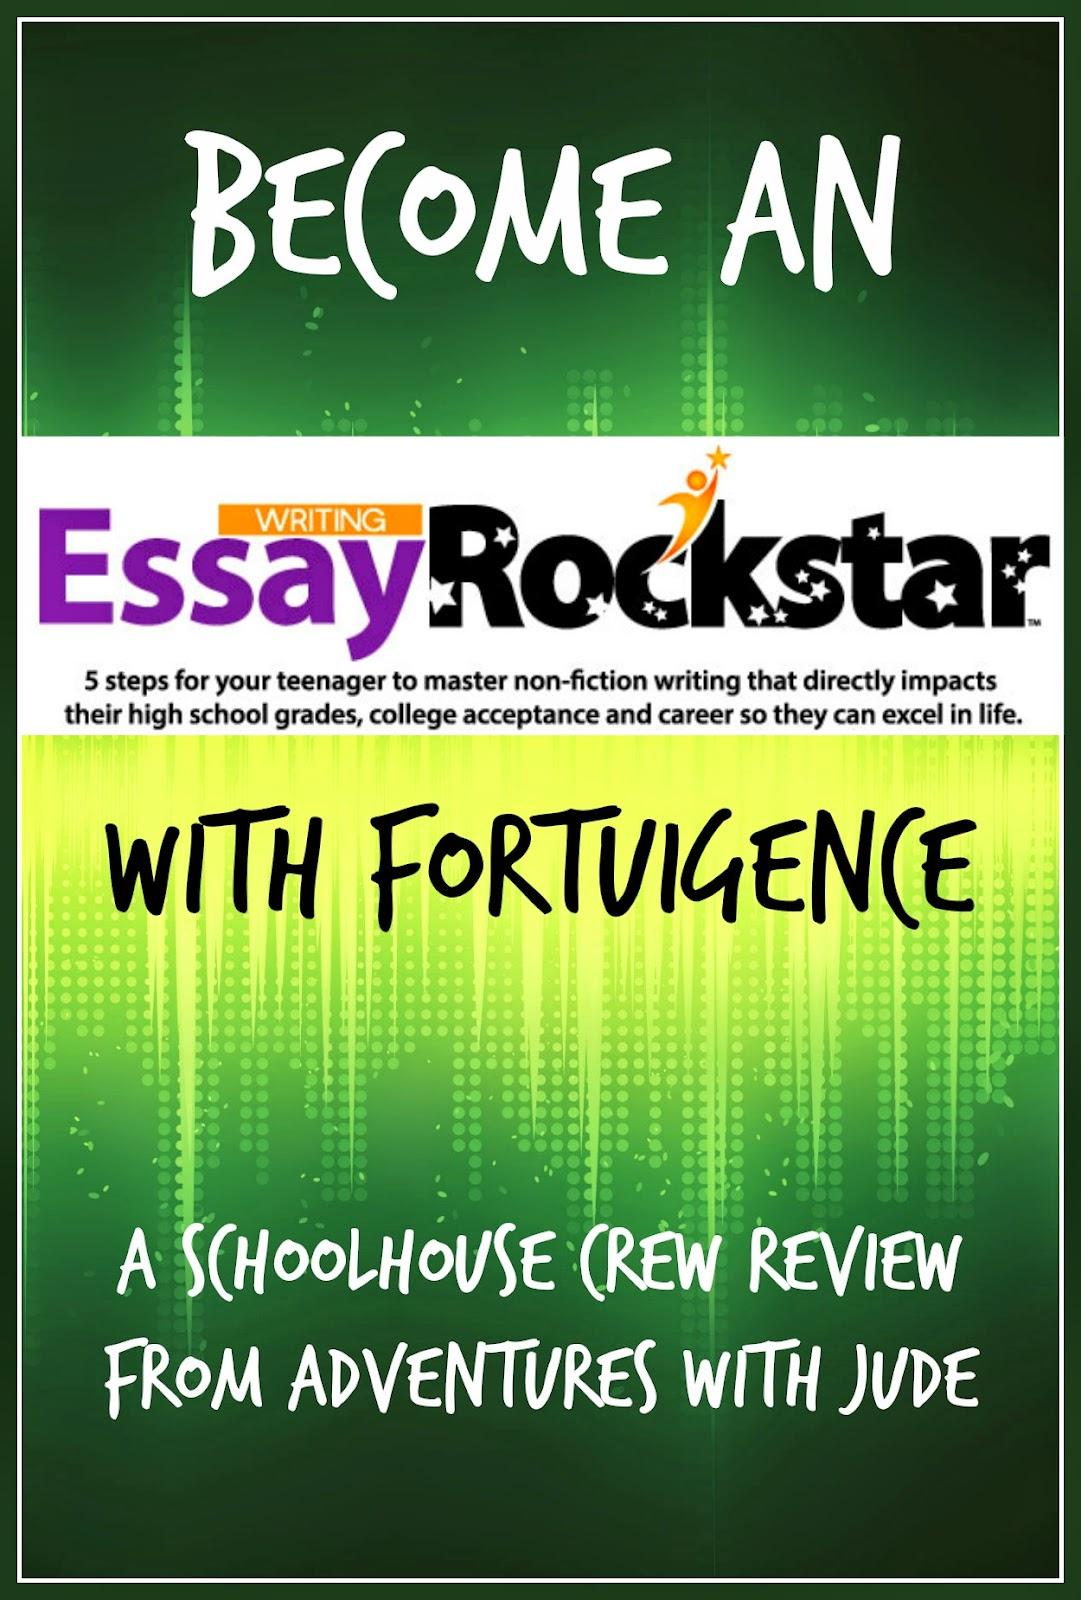 Review of Fortuigence's Essay Rock Star